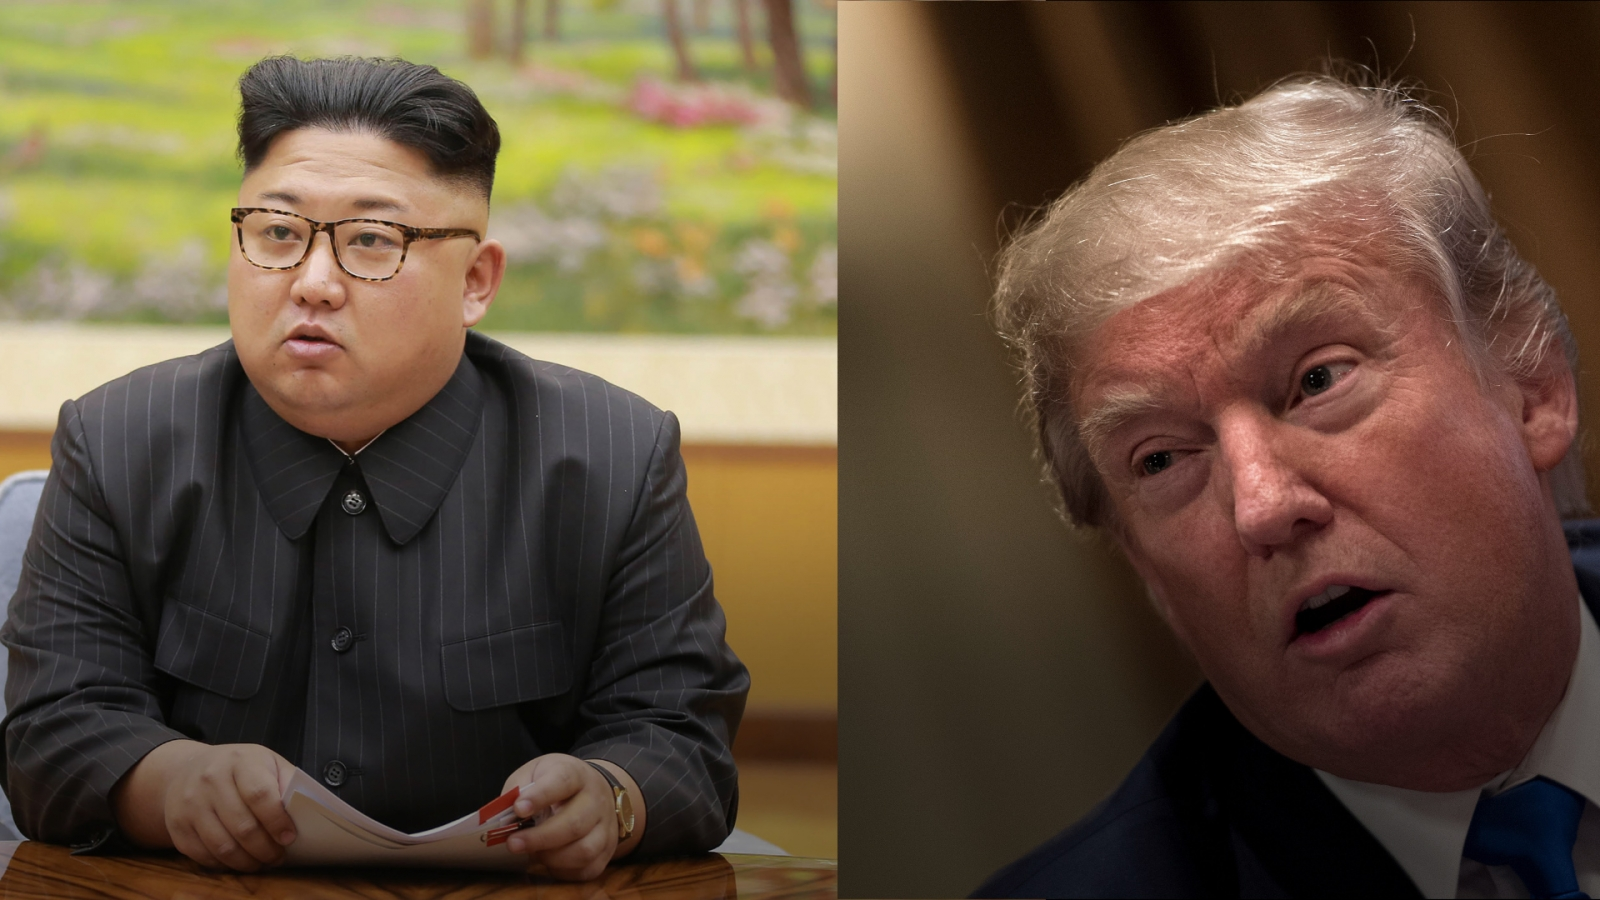 North Korea calls Trump 'barking dog' as war of words escalates